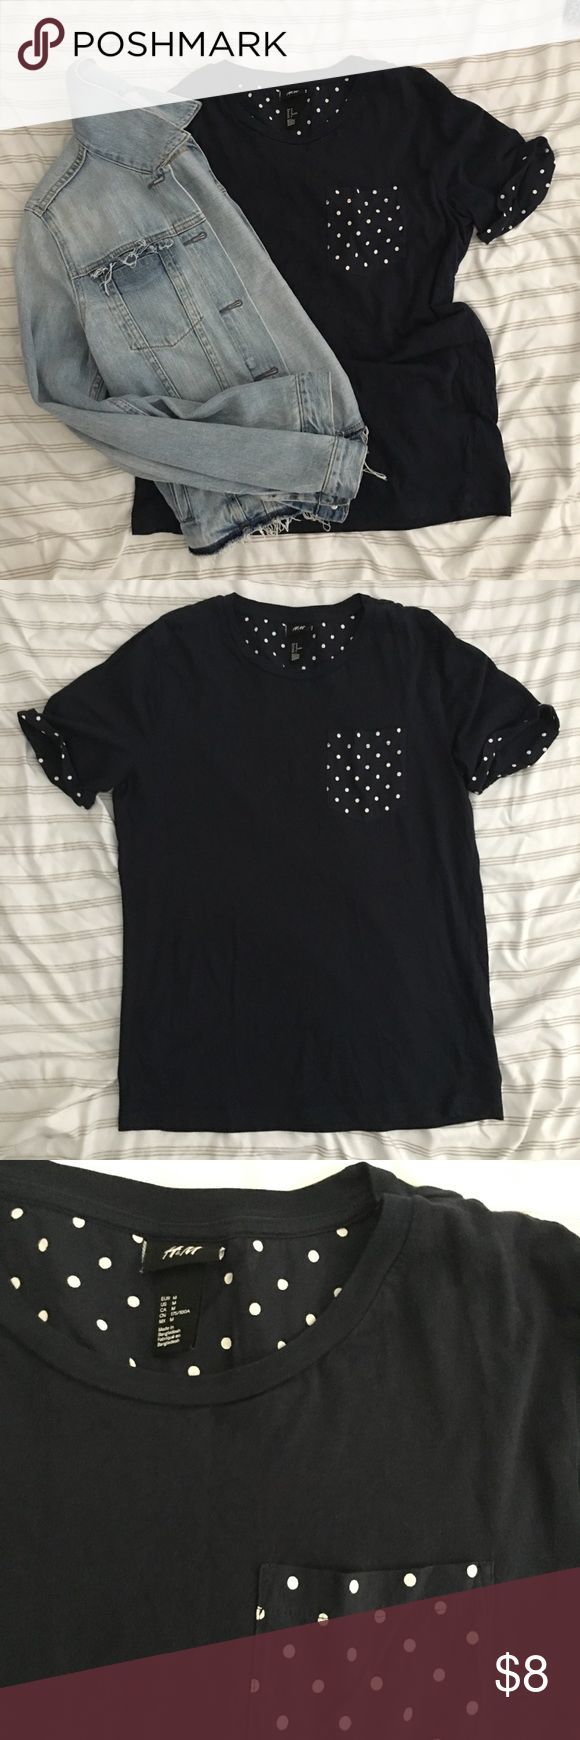 🌟H&M - polkadot  accented navy t shirt H&M size medium navy t shirt. Polka dot accent inside the neck area. Sleeve roll and pocket. Soft and cute! Wore it only couple times. Like new. - no tag H&M Tops Tees - Short Sleeve